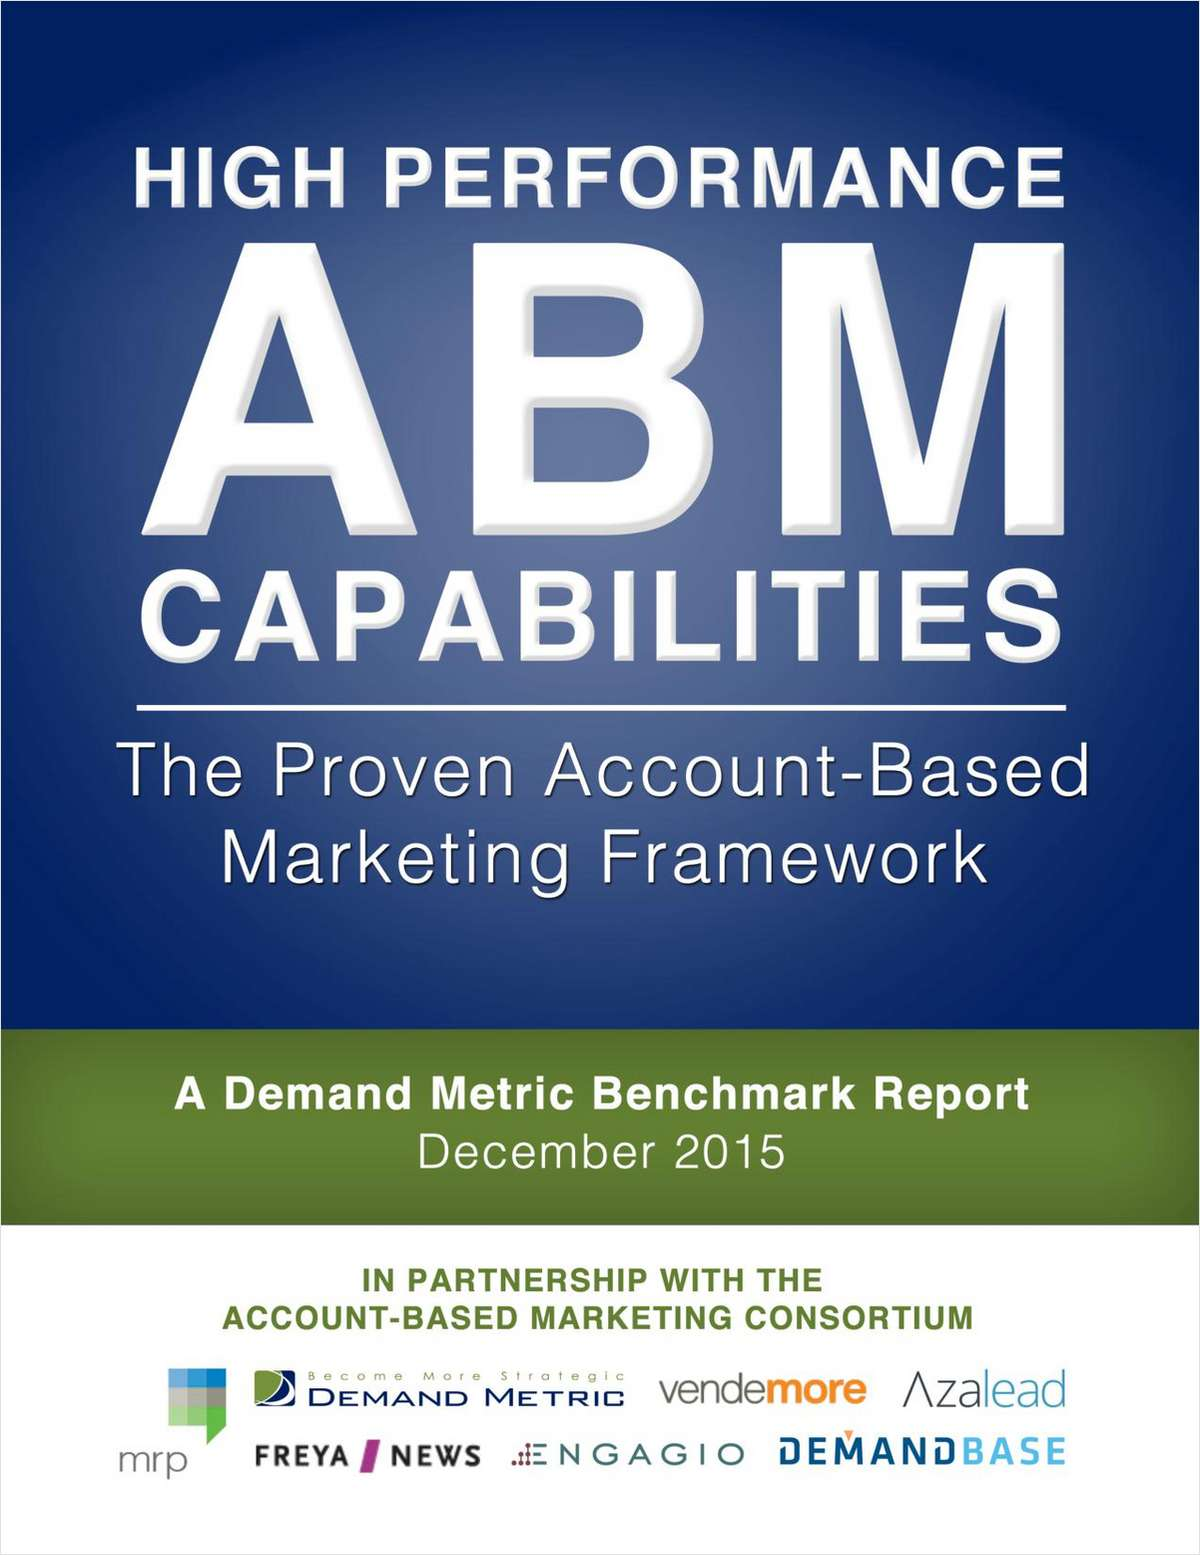 High Performance ABM Capabilities: The Proven Account-Based Marketing Framework